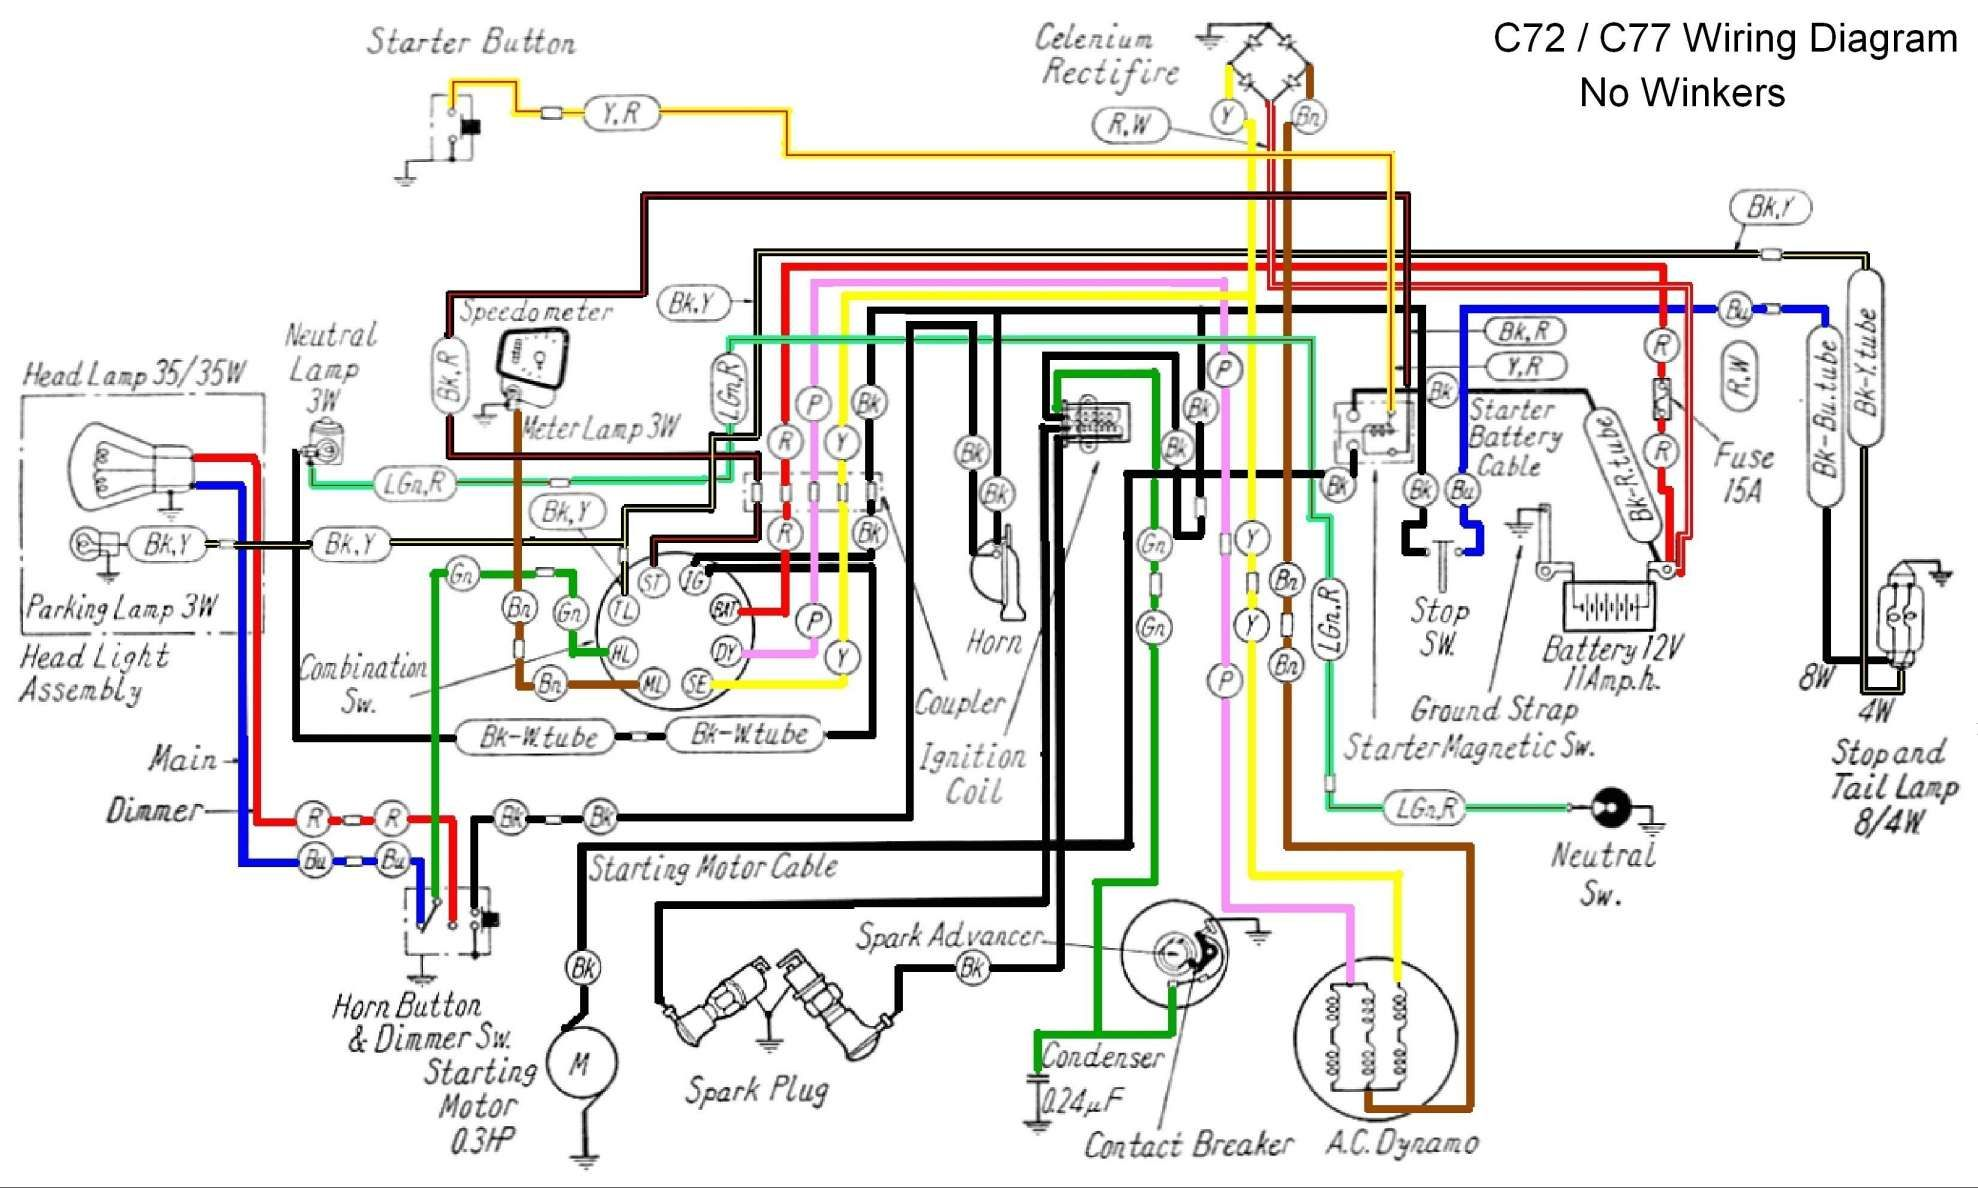 16+ Honda Gx270 Electric Start Wiring Diagram - Wiring Diagram -  Wiringg.net | Motorcycle wiring, Honda motorcycles, Honda ex5 | 110 Schematic Wiring Diagram Ground |  | Pinterest